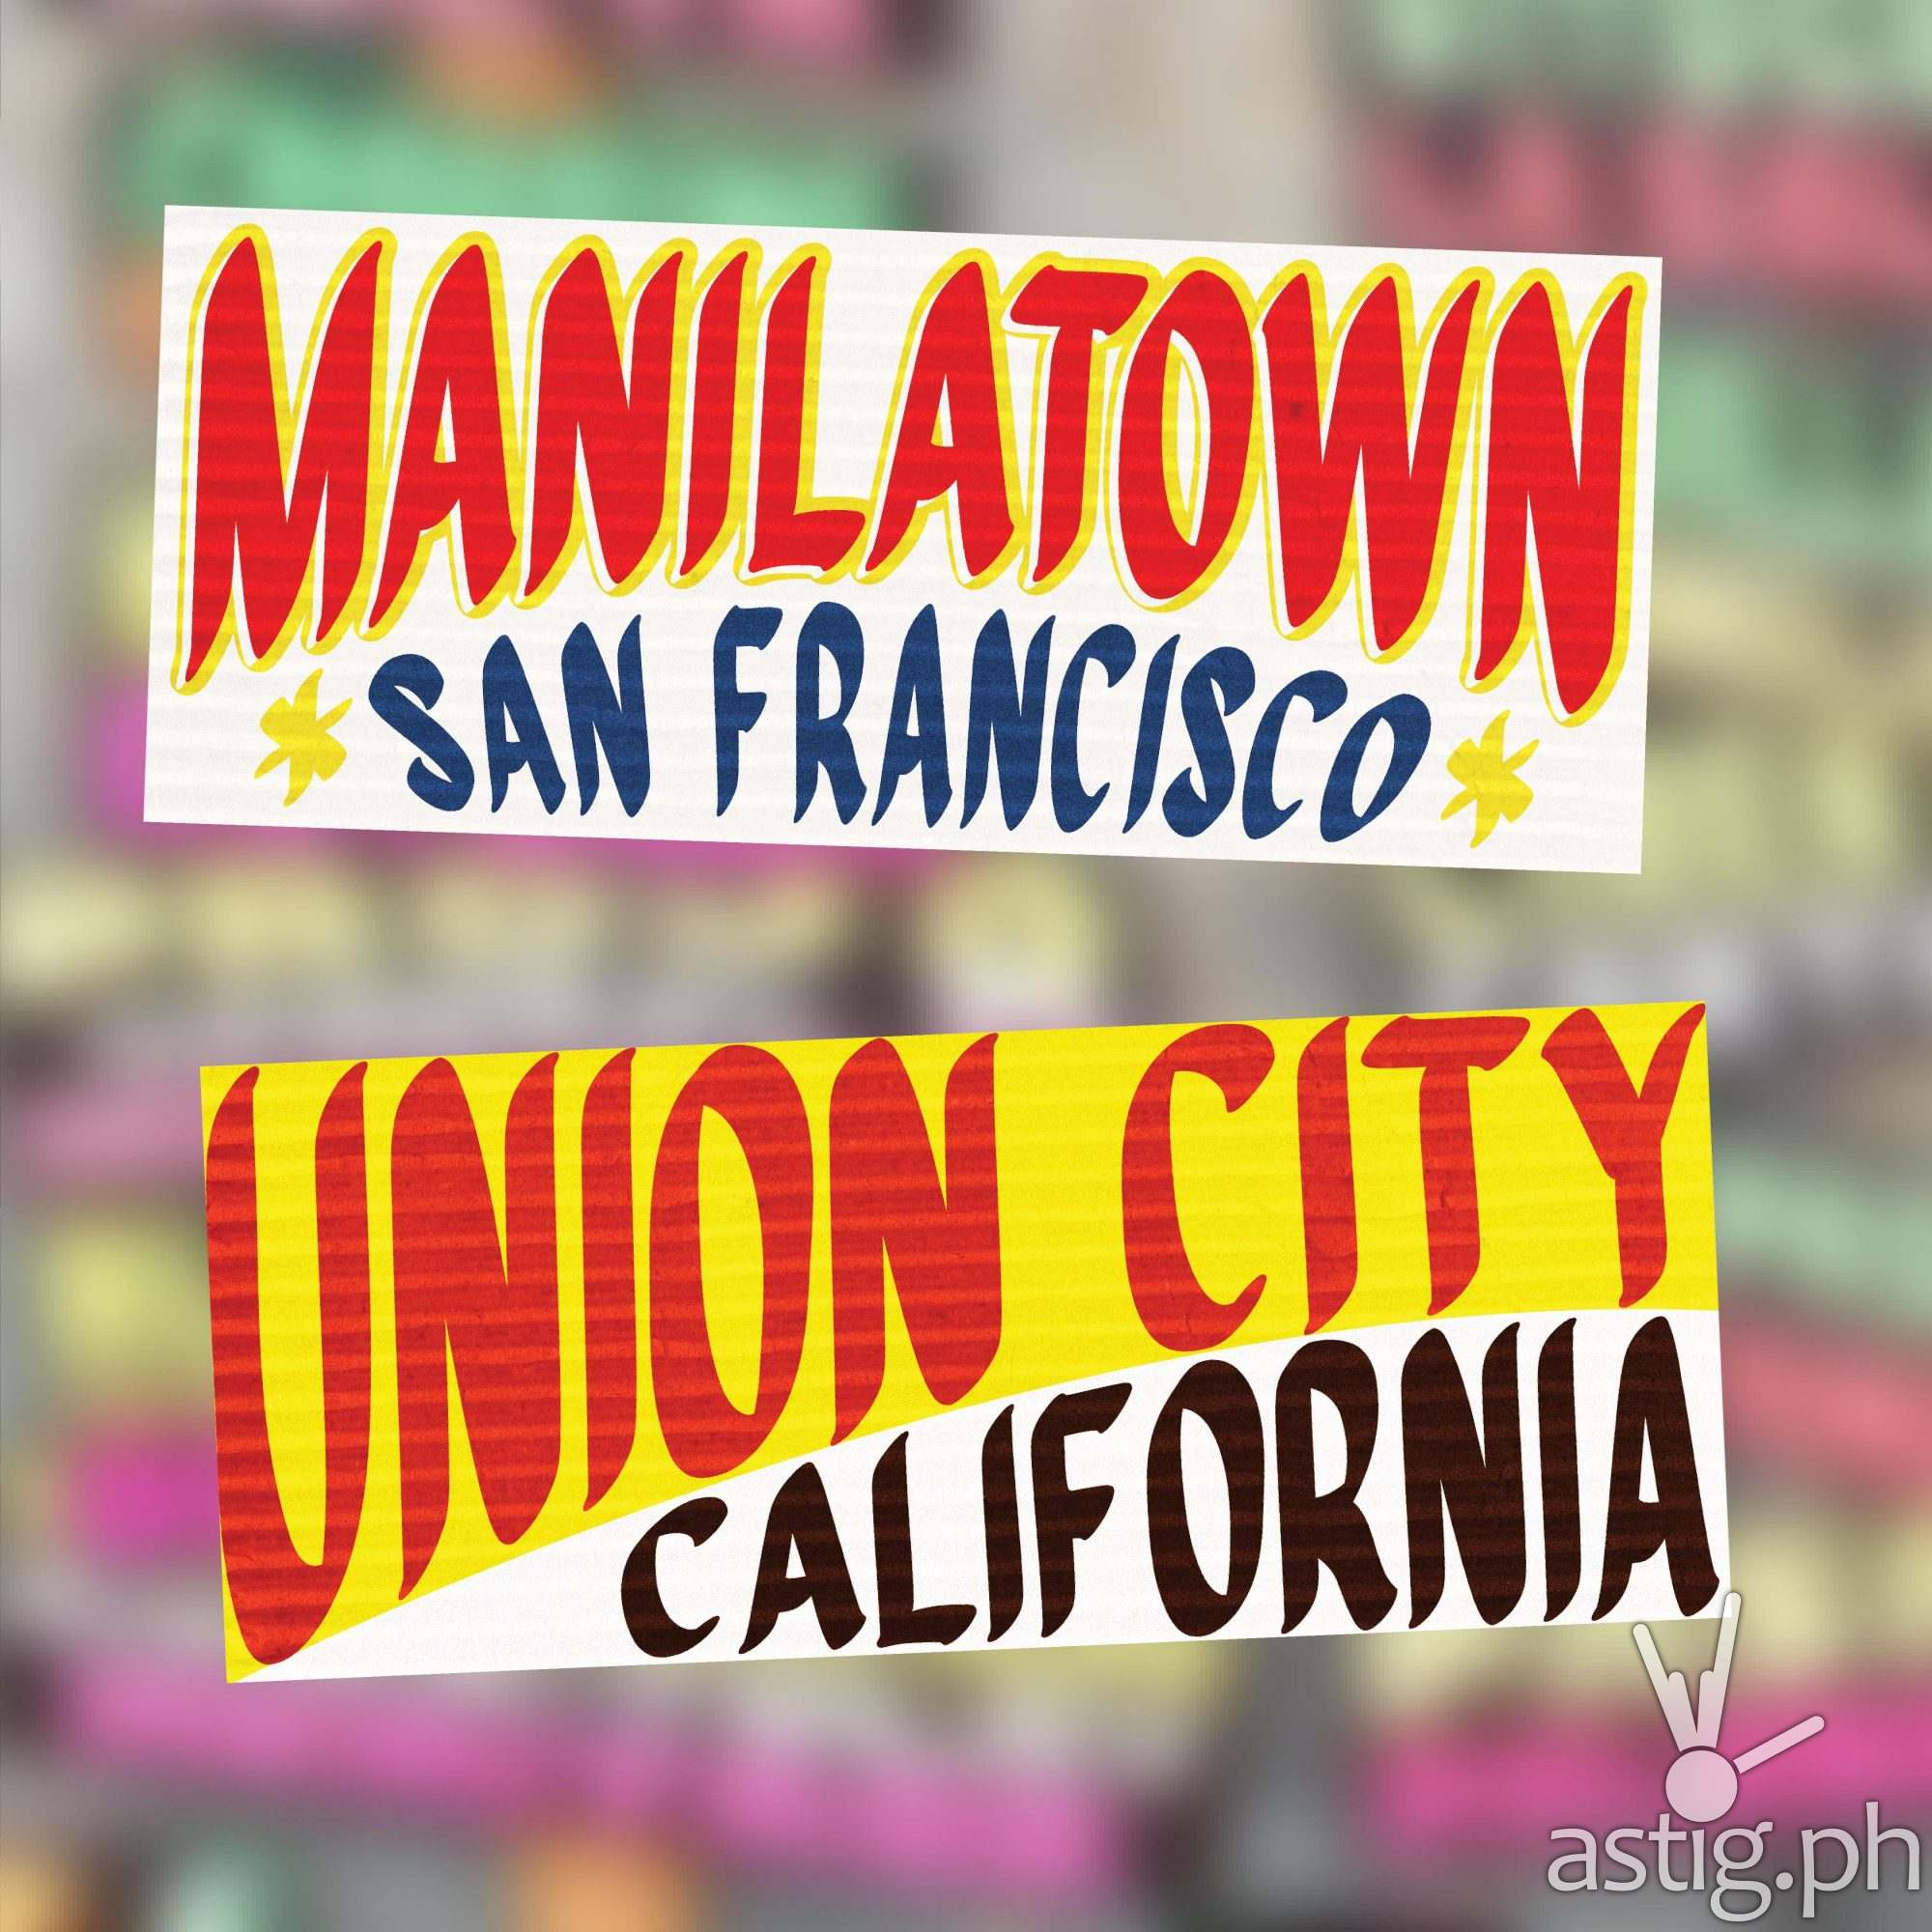 Manilatown, San Francisco and Union City, Clifornia - US cities as jeepney signs from the Philippines by Zach Reyes